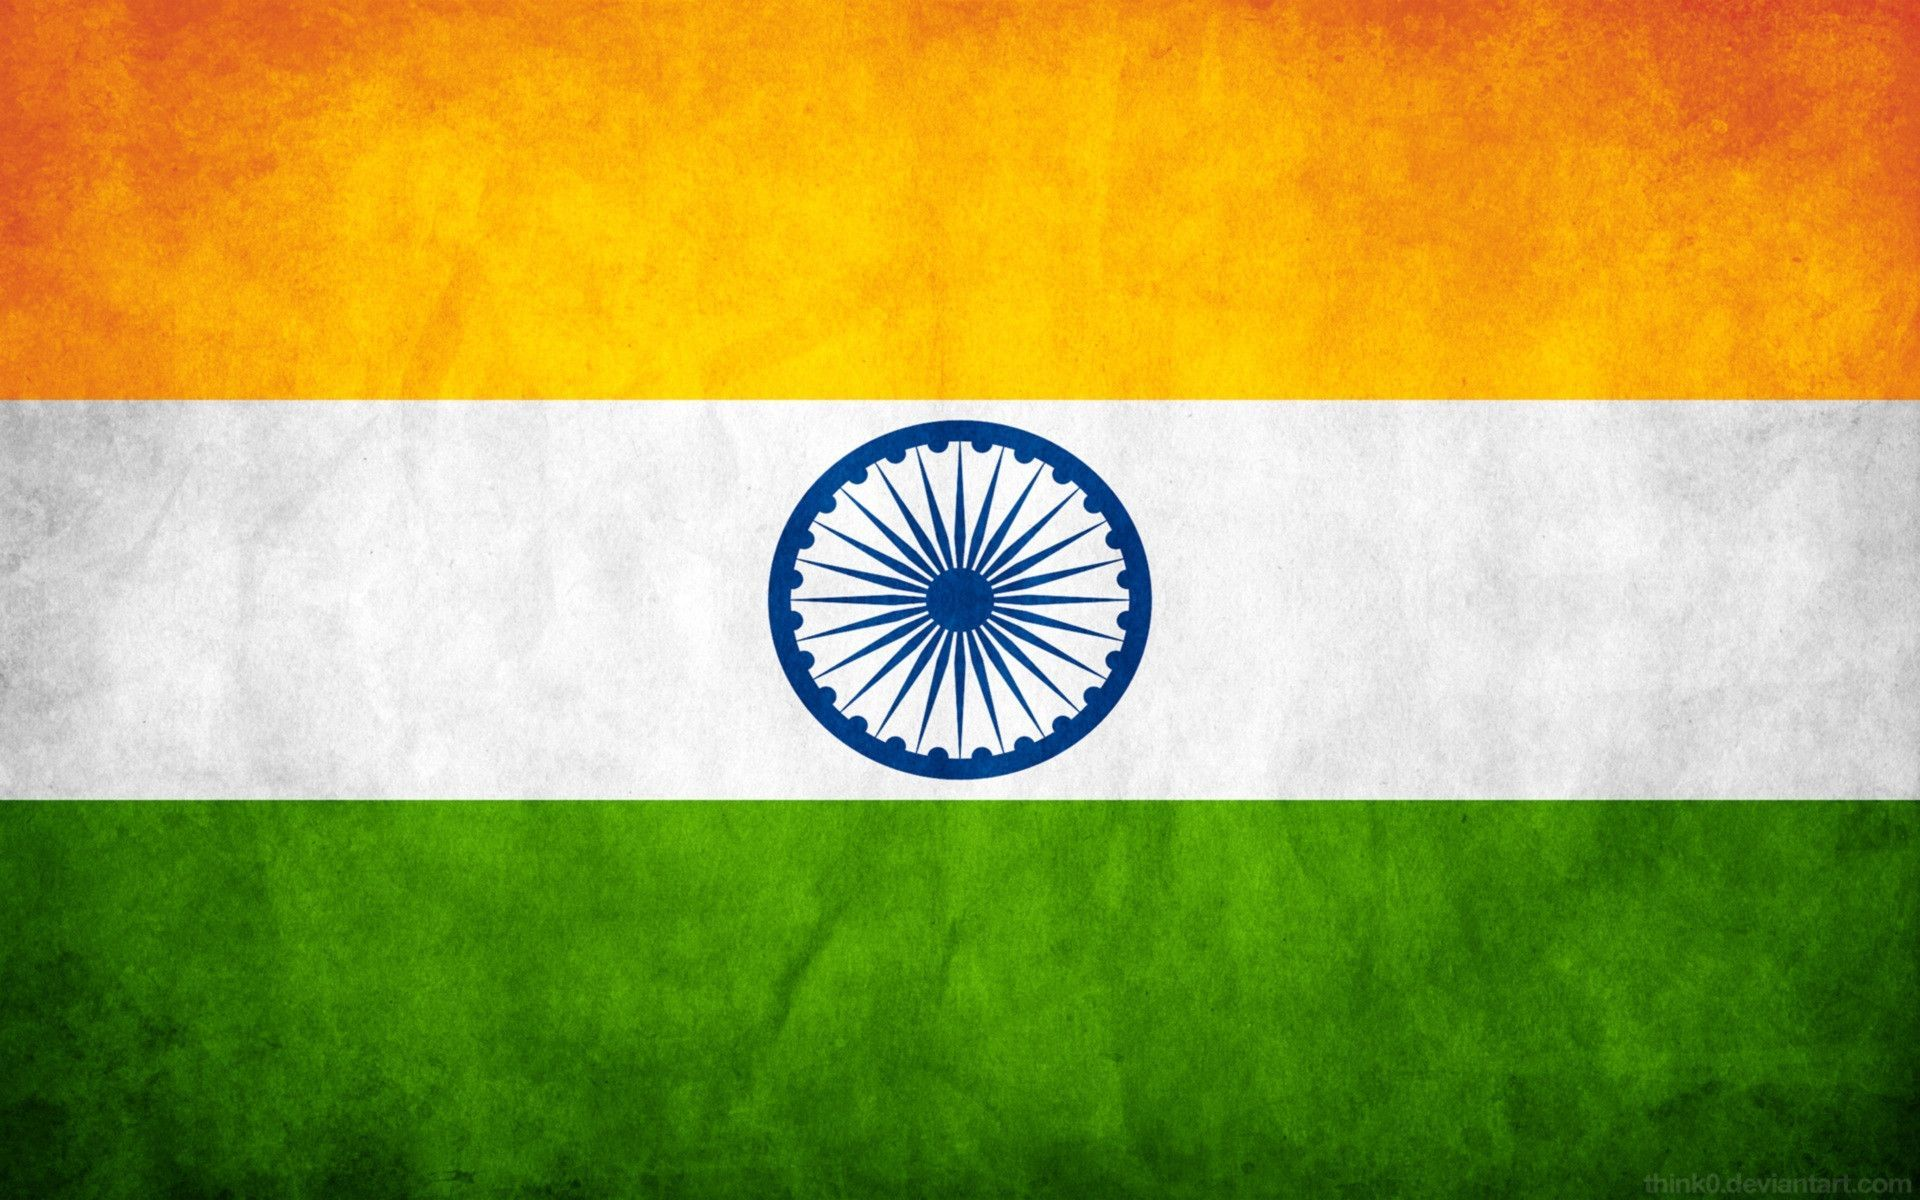 Indian Flag Wallpaper High Resolution Hd Google Search Republic Day India Republic Day Message Independence Day Quotes